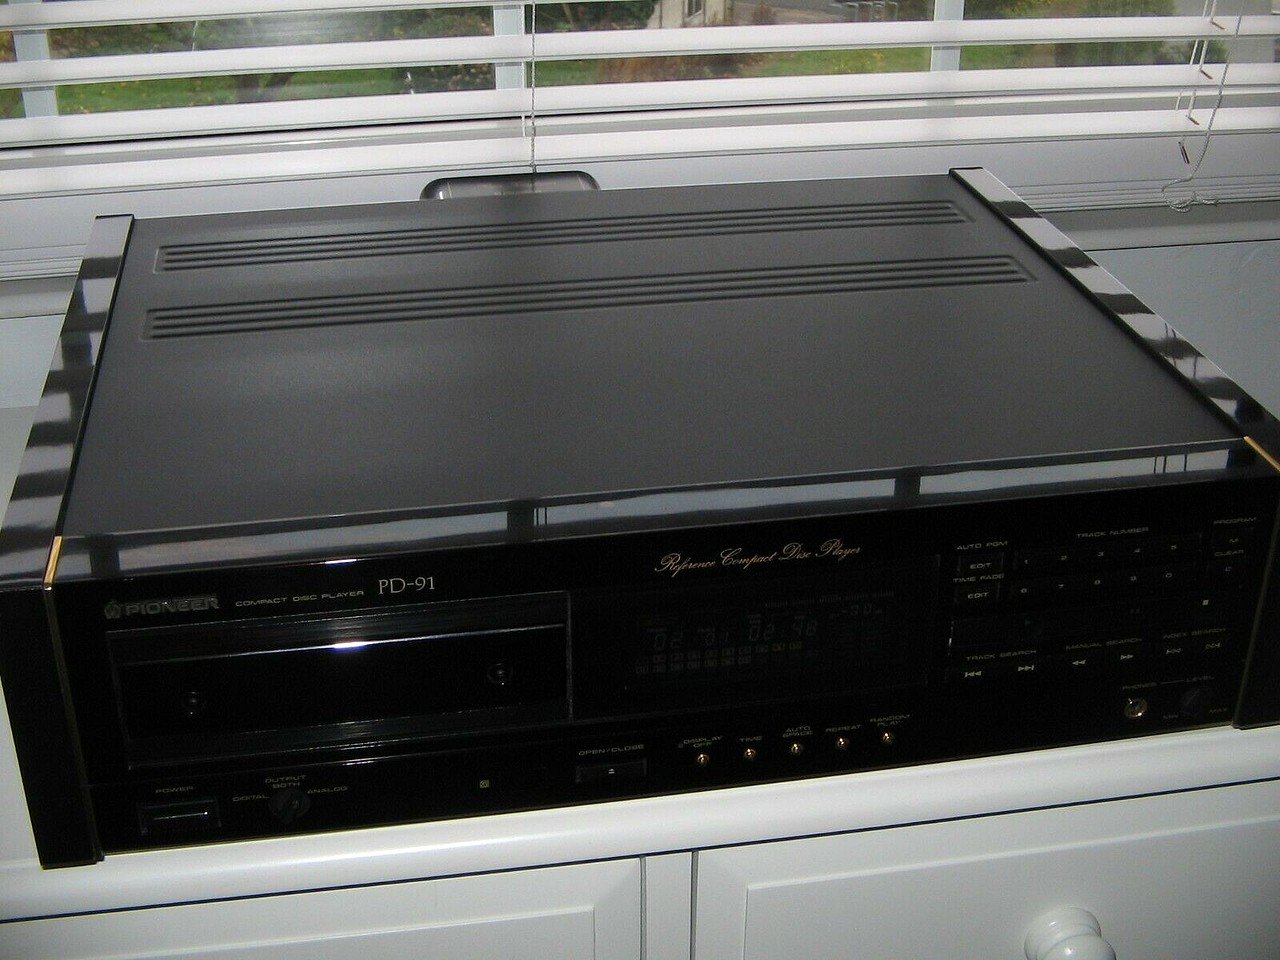 Pioneer PD-91 Urushi Reference 0ac31342a8234d49212bb3df2ea26cdao